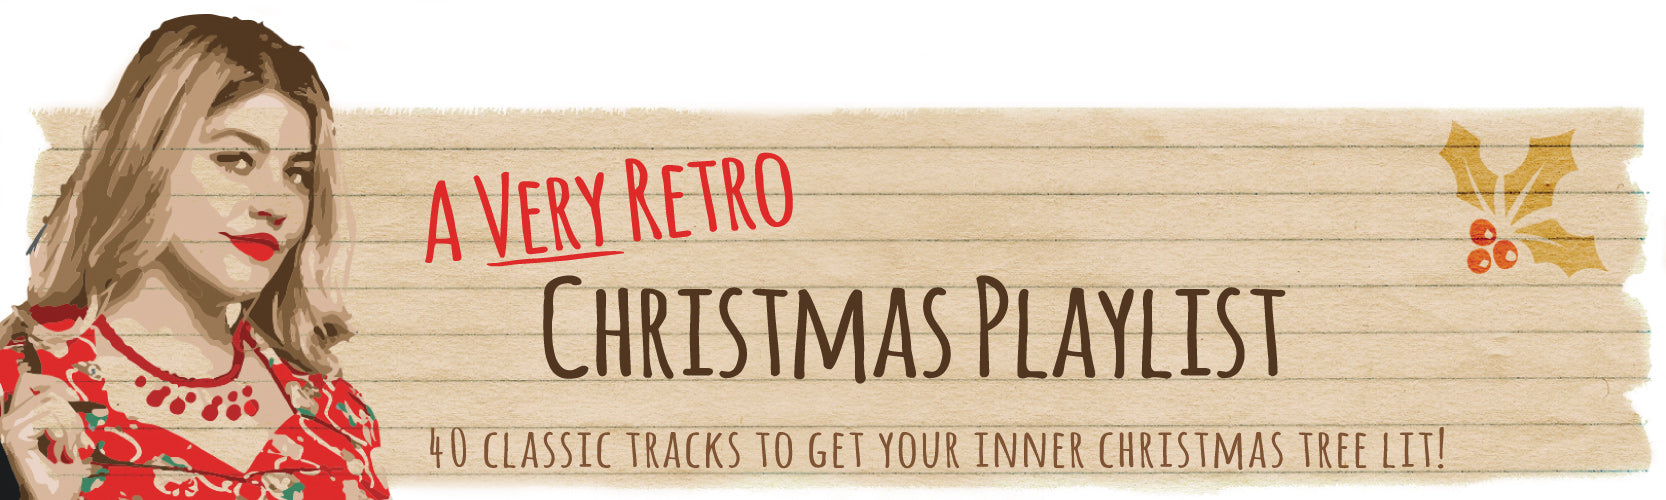 A Very Retro Christmas Playlist